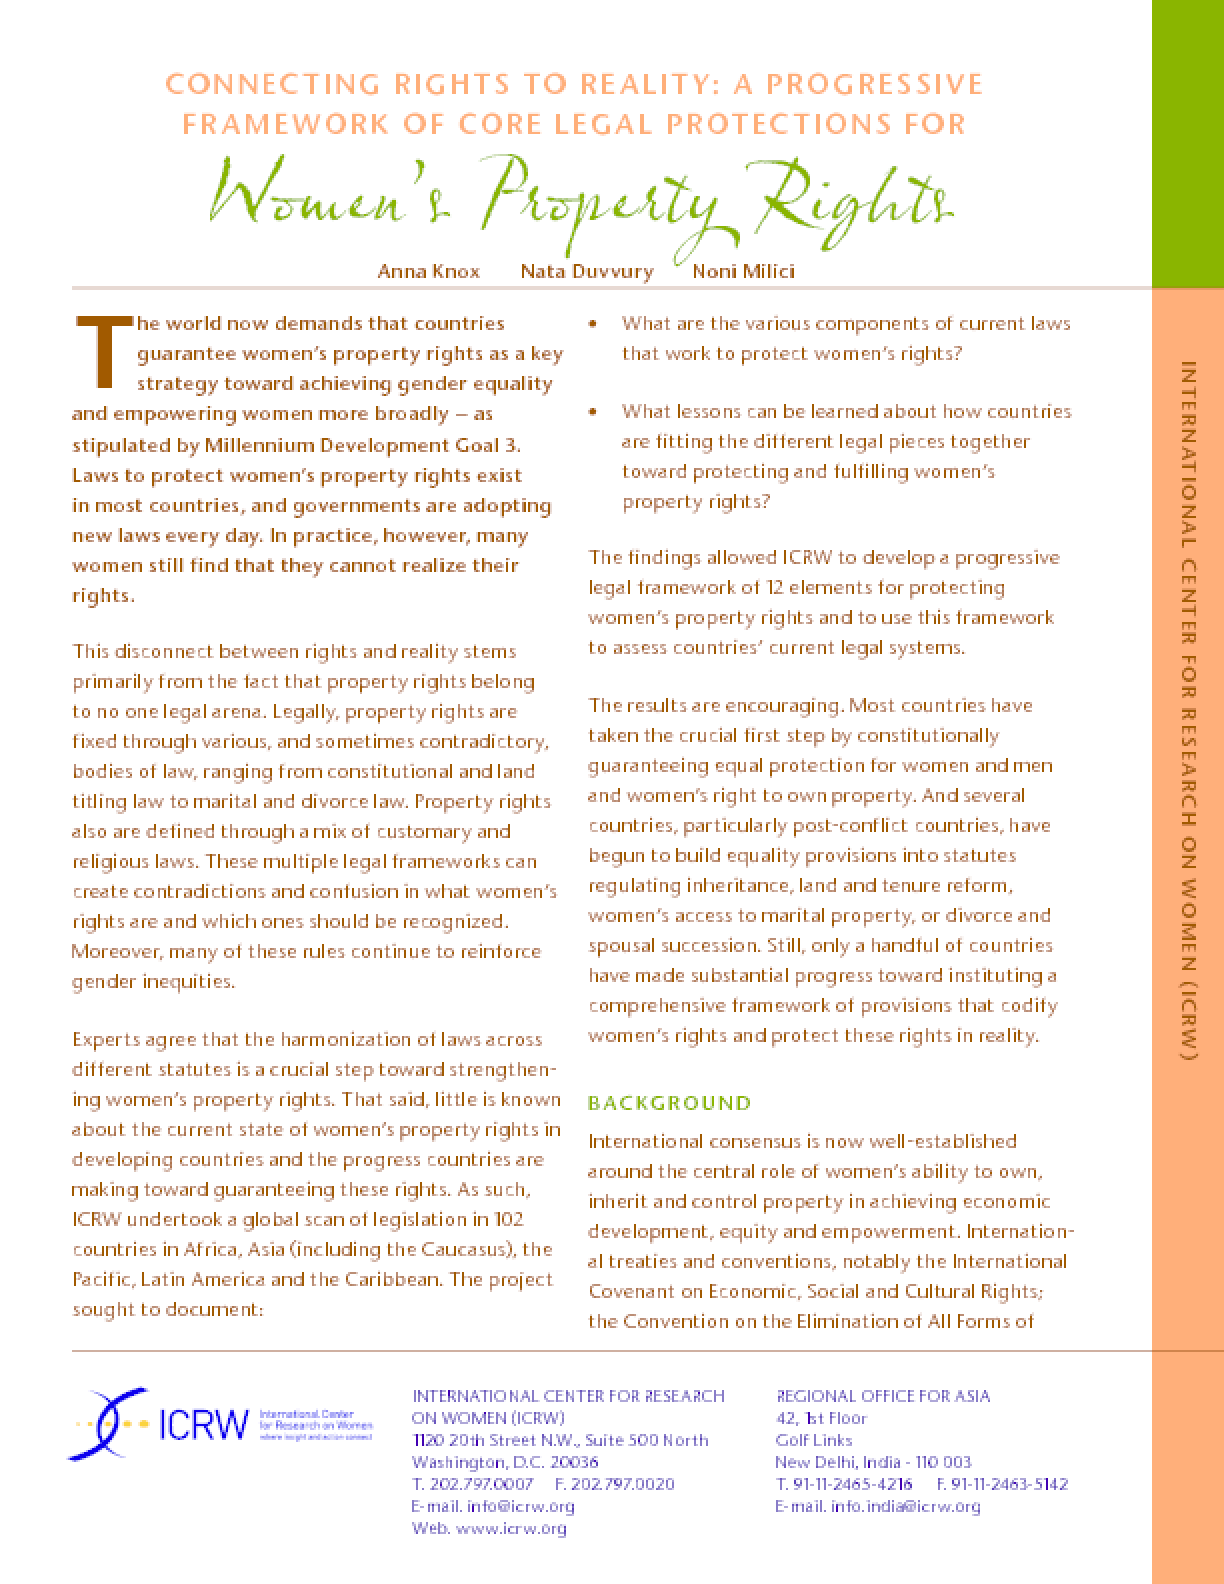 Connecting Rights to Reality: A Progressive Framework of Core Legal Protections for Women's Property Rights